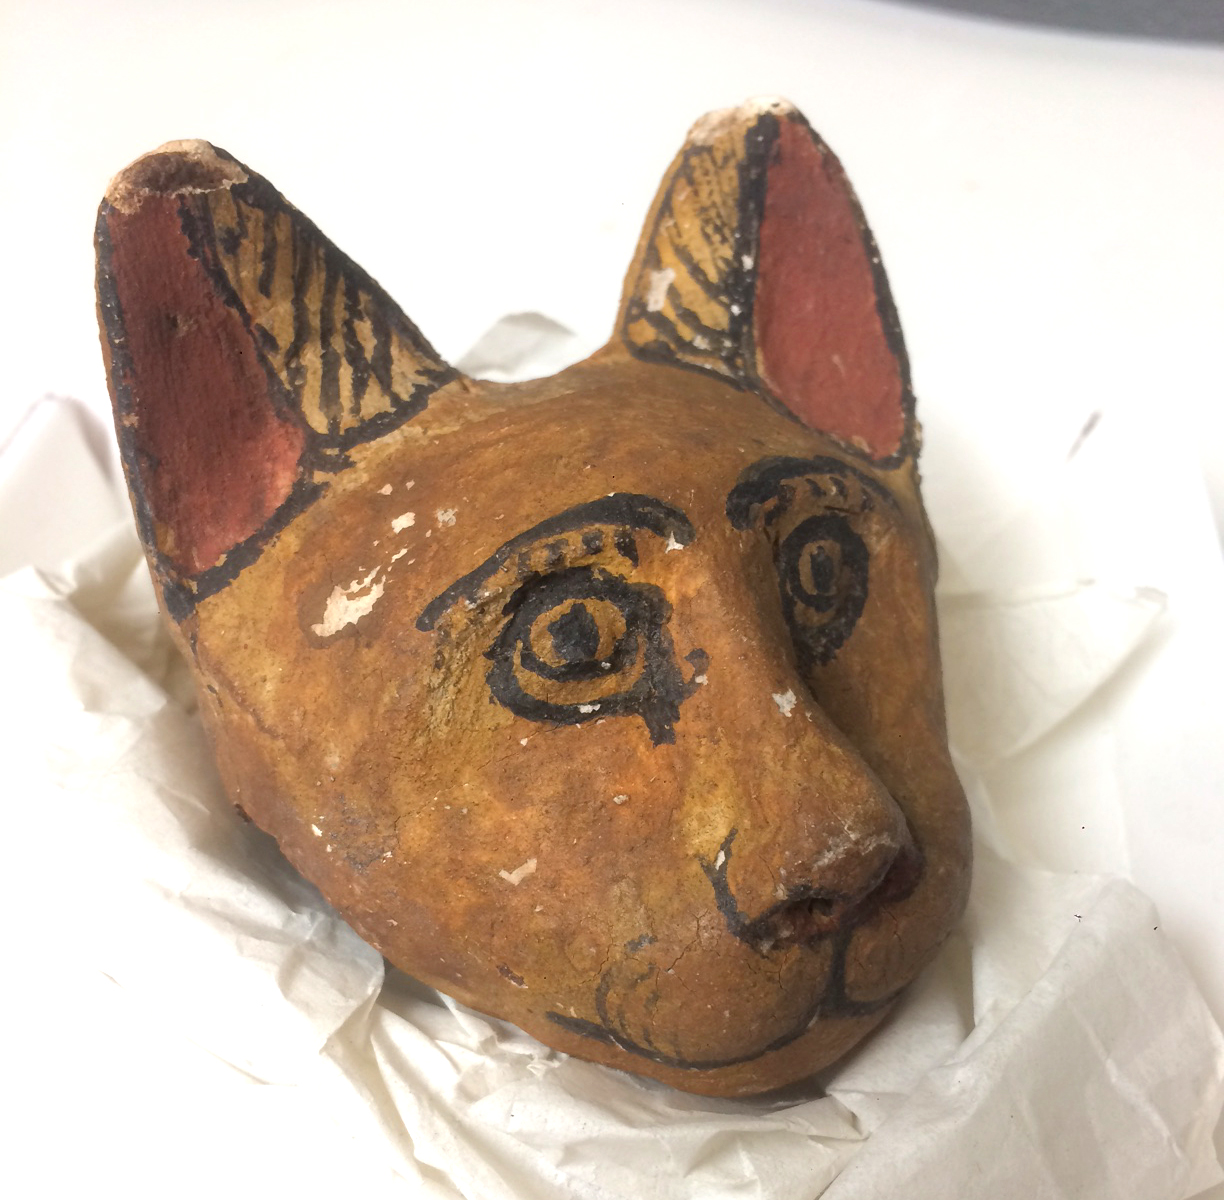 E11474: Ptolemaic cartonnage cat head from Abydos